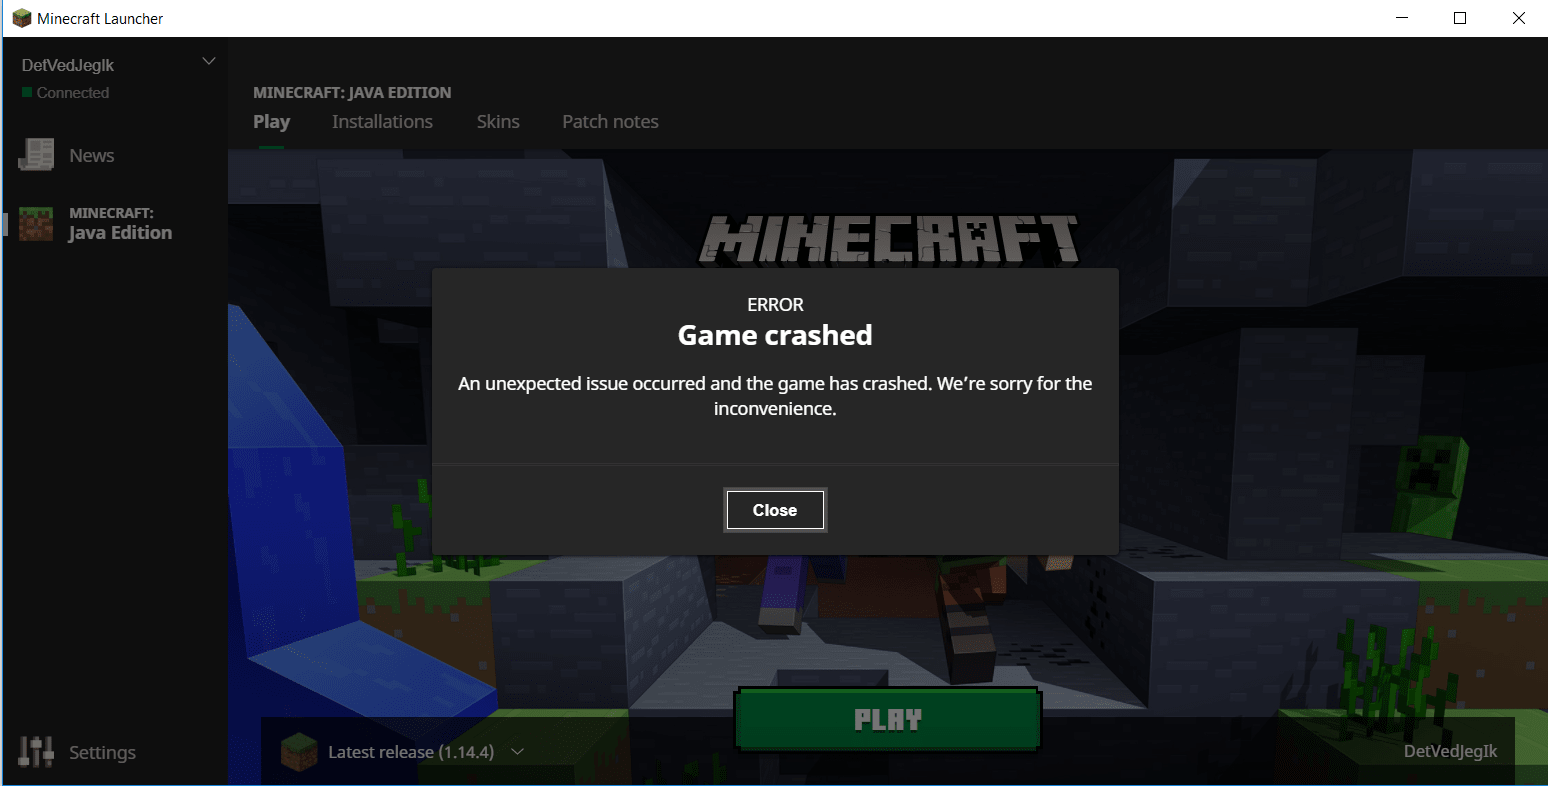 minecraft keep crashing, here is fix